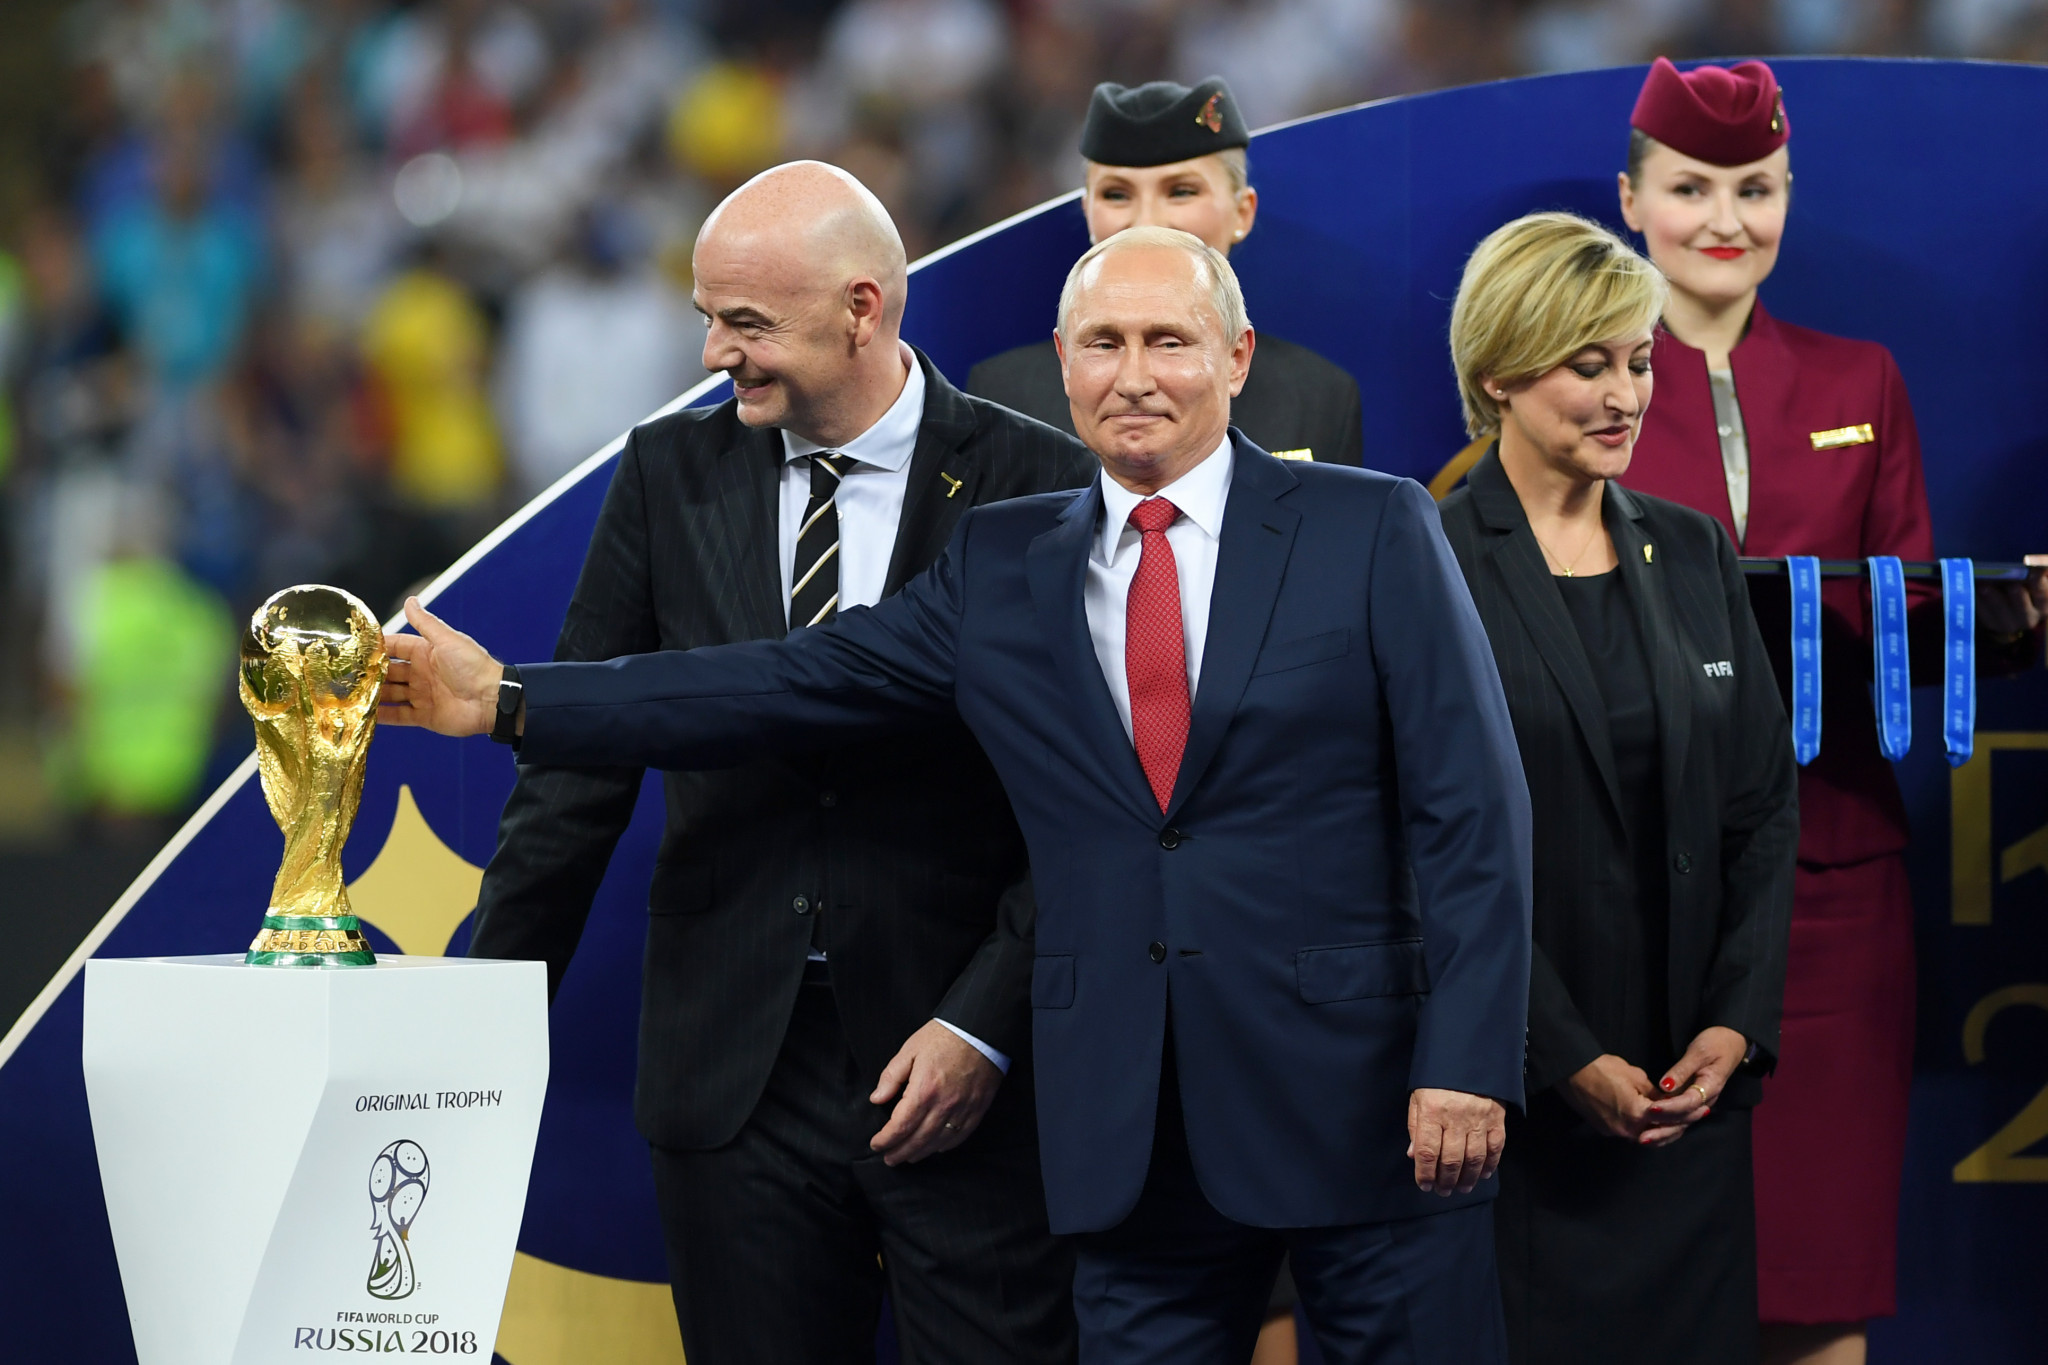 FIFA President Gianni Infantino, left, declared the World Cup in Russia as the